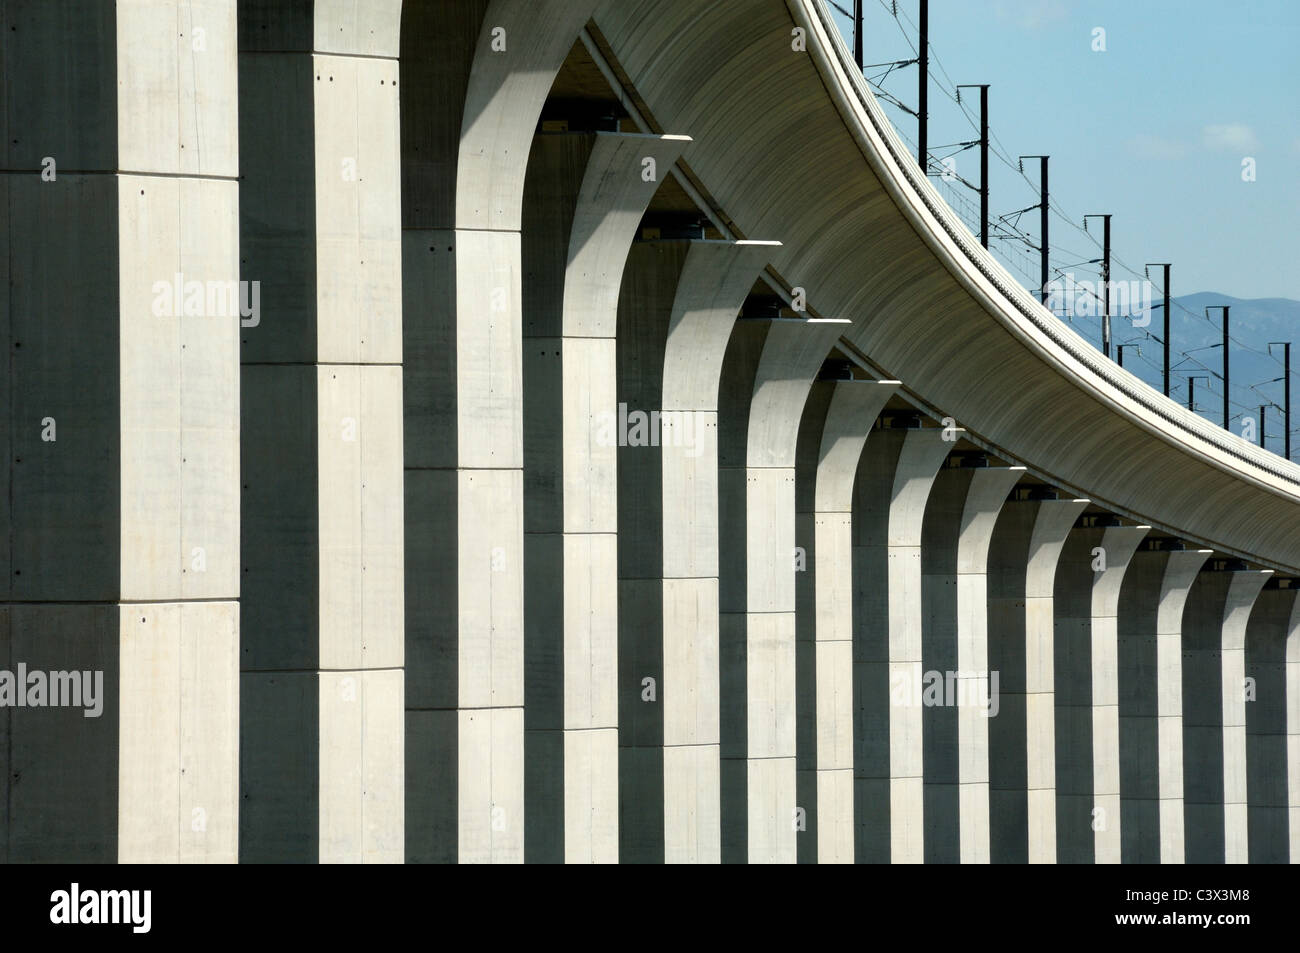 Ventabren Rail or Railway Viaduct and Concrete Columns or Pillars Provence France - Stock Image